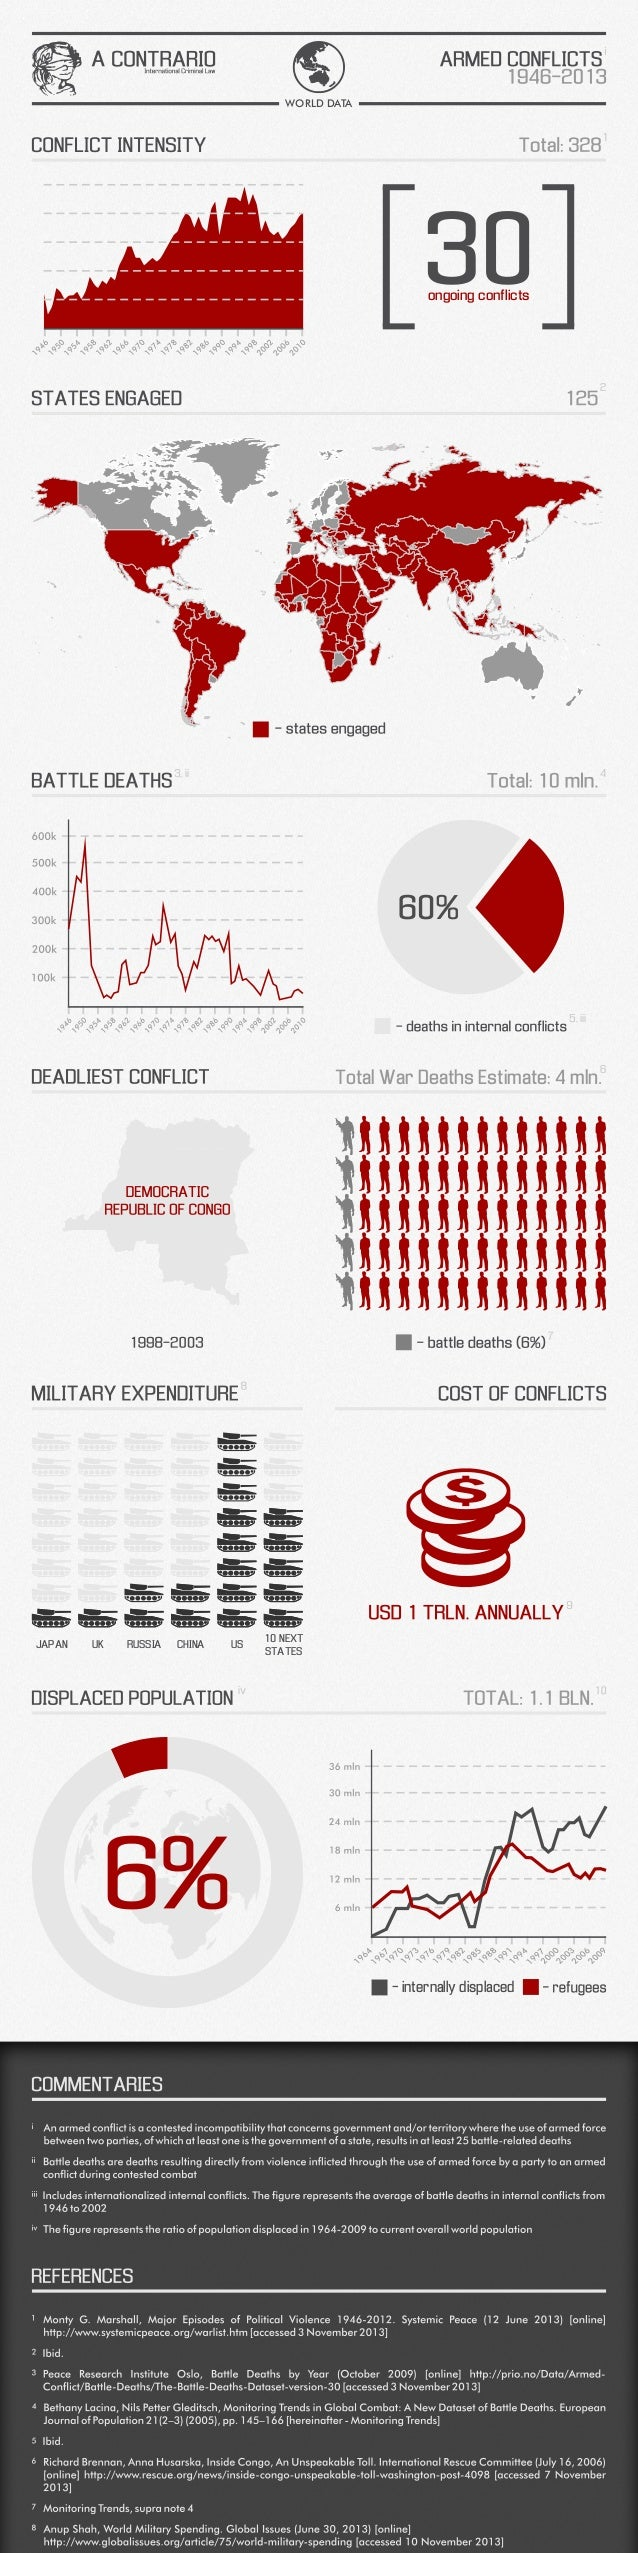 Armed Conflicts 1946-2013